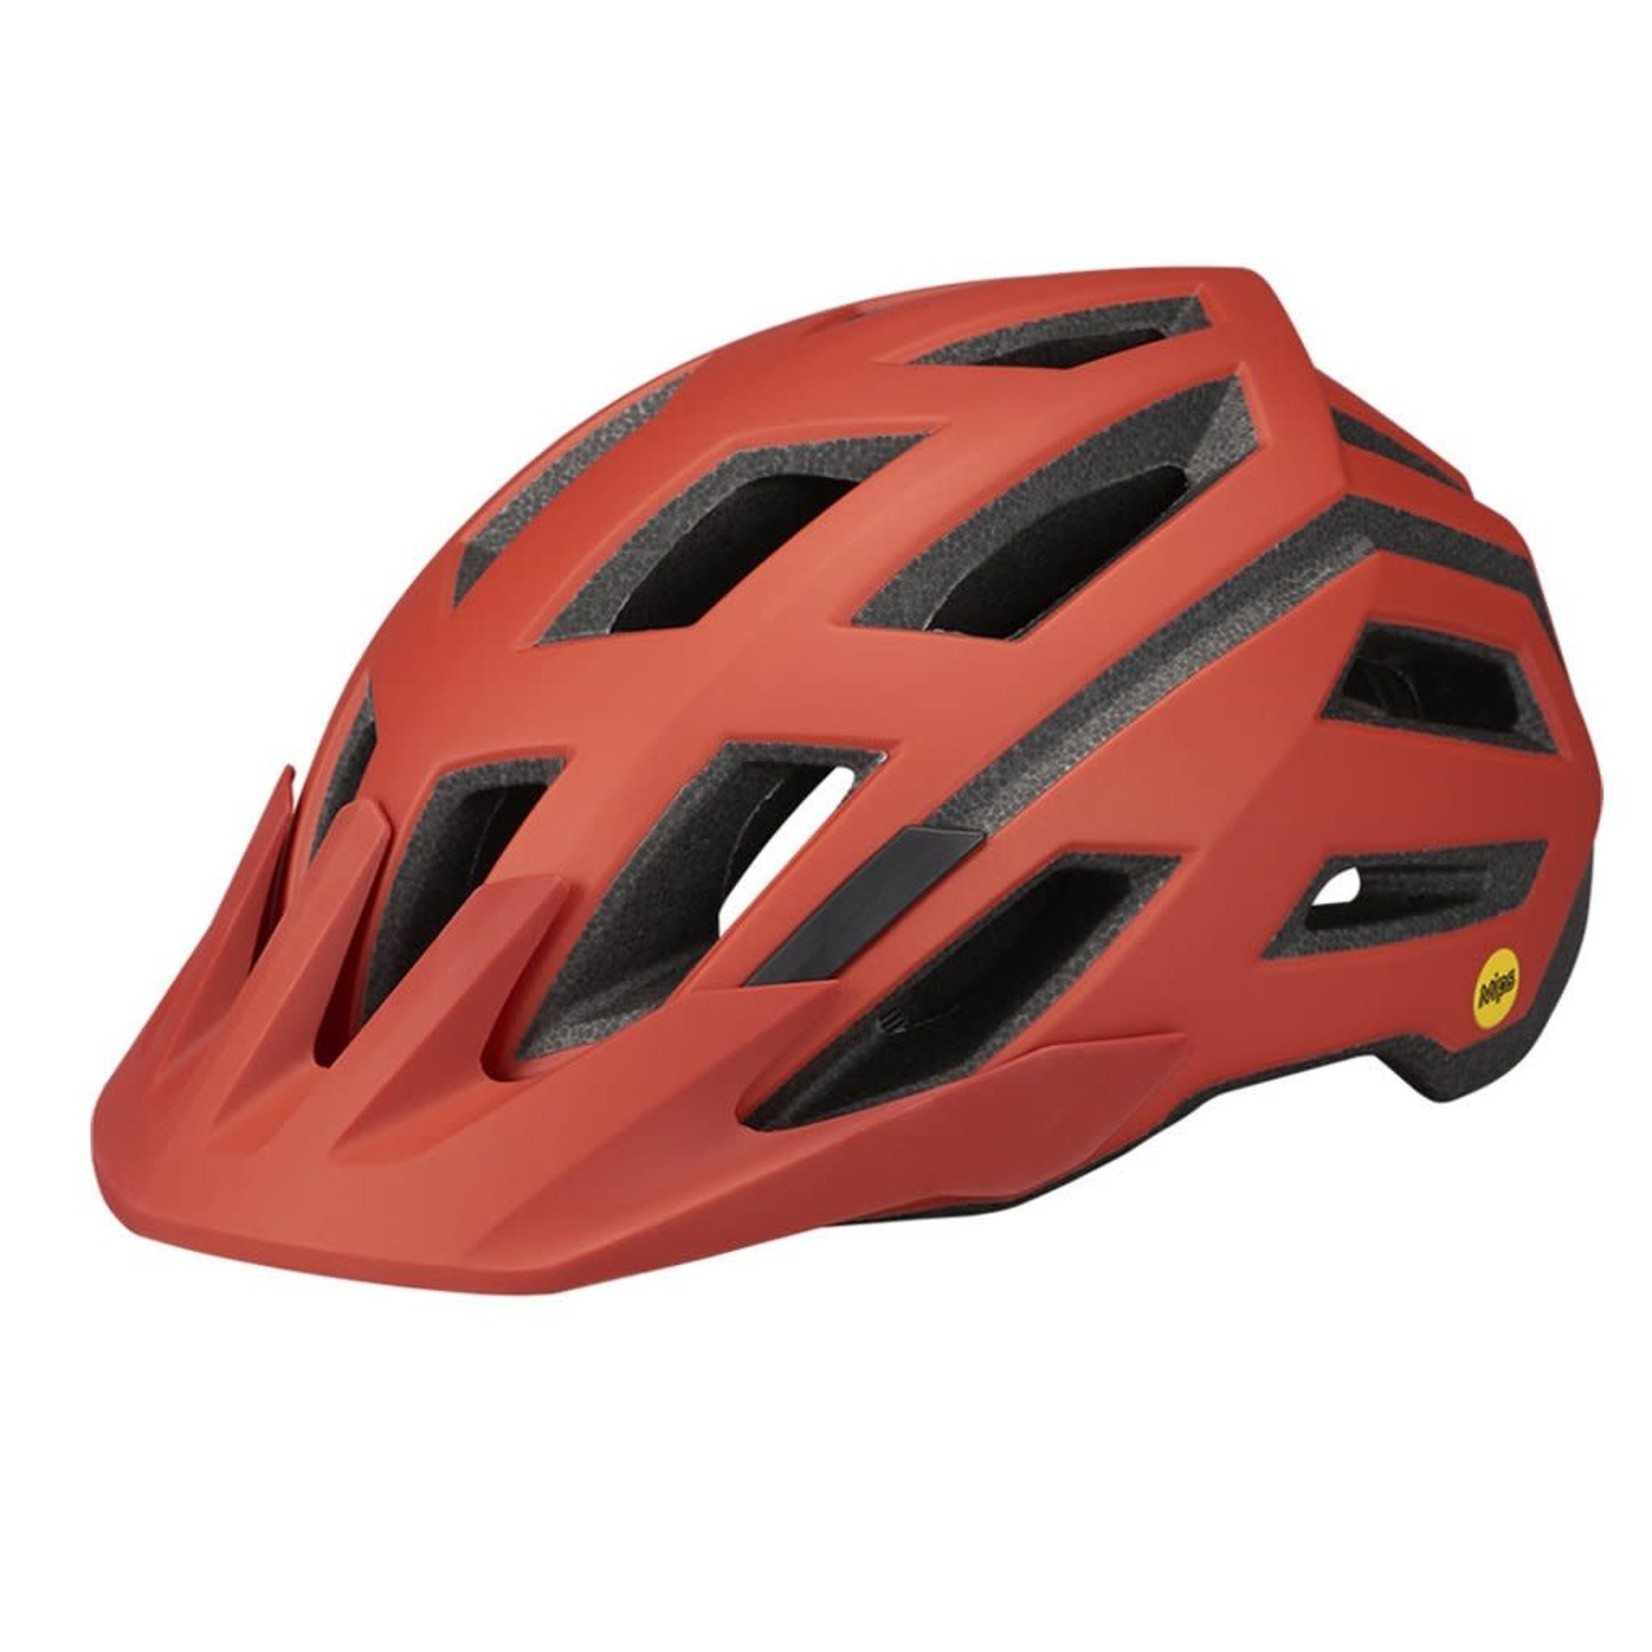 Specialized Specialized Tactic 3 Helmet, Red, L